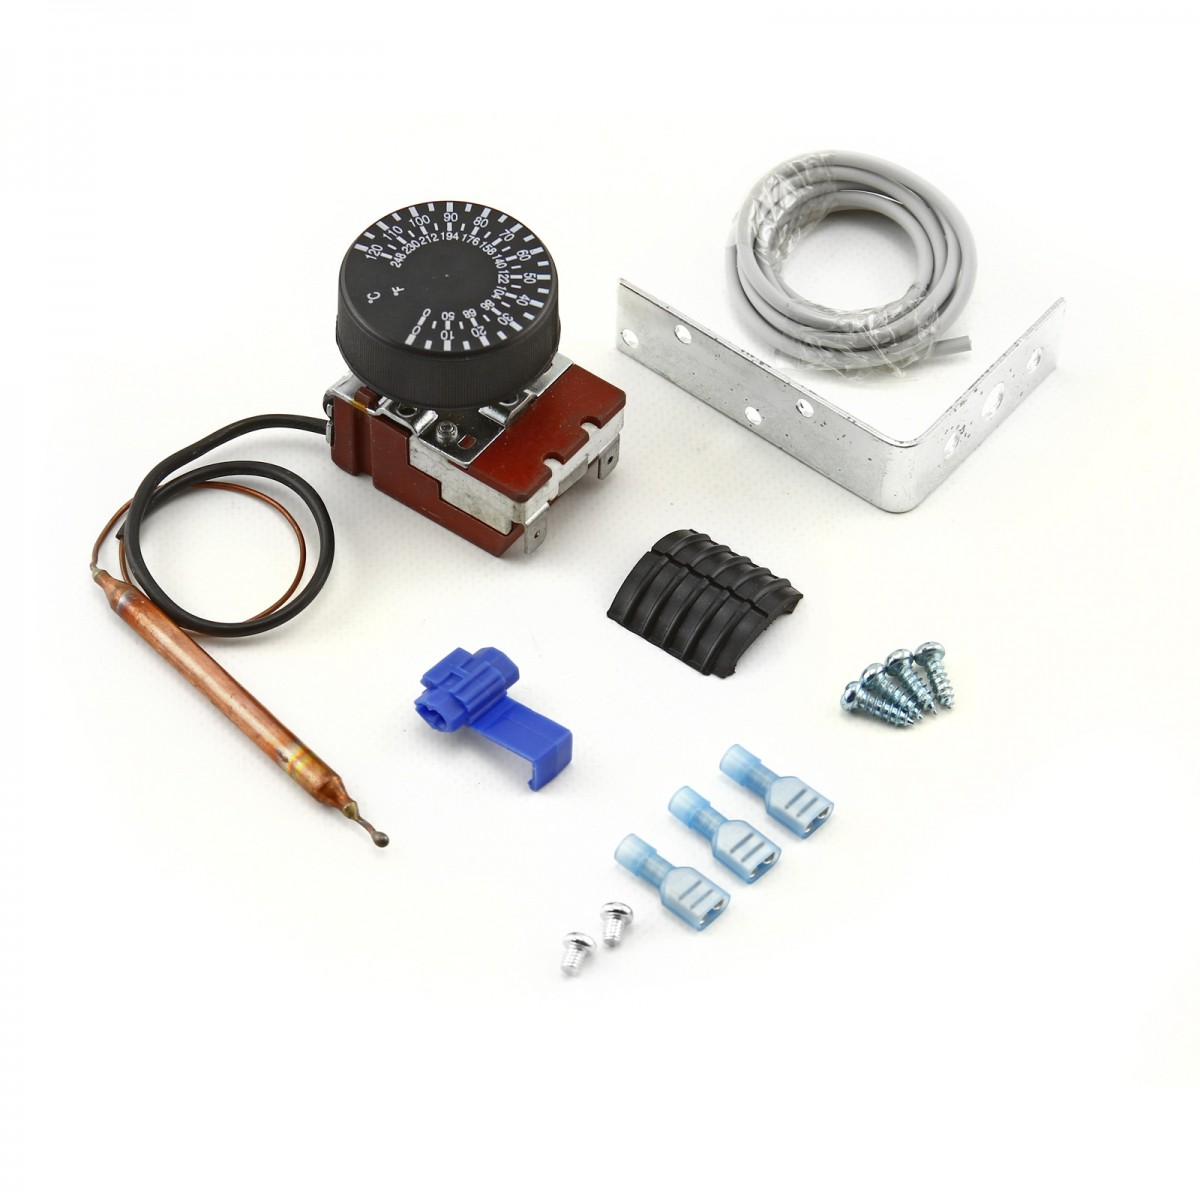 hight resolution of out of stock 6 1 6 9 19 universal 12v 0 120c deg adjustable electric thermo fan switch kit